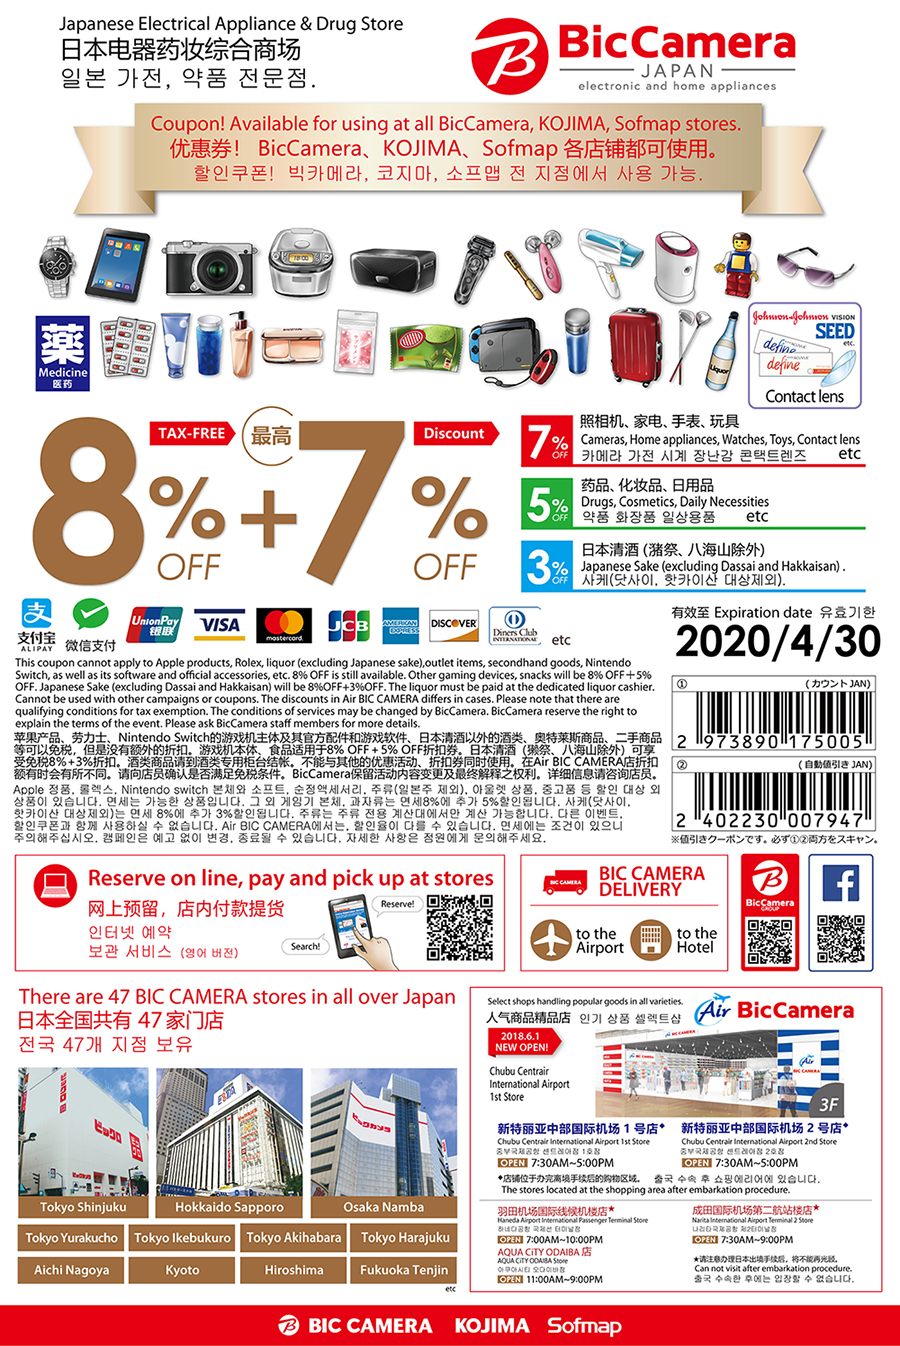 Re: Discounts/Coupons for BIC Camera and Yodobashi in Japan